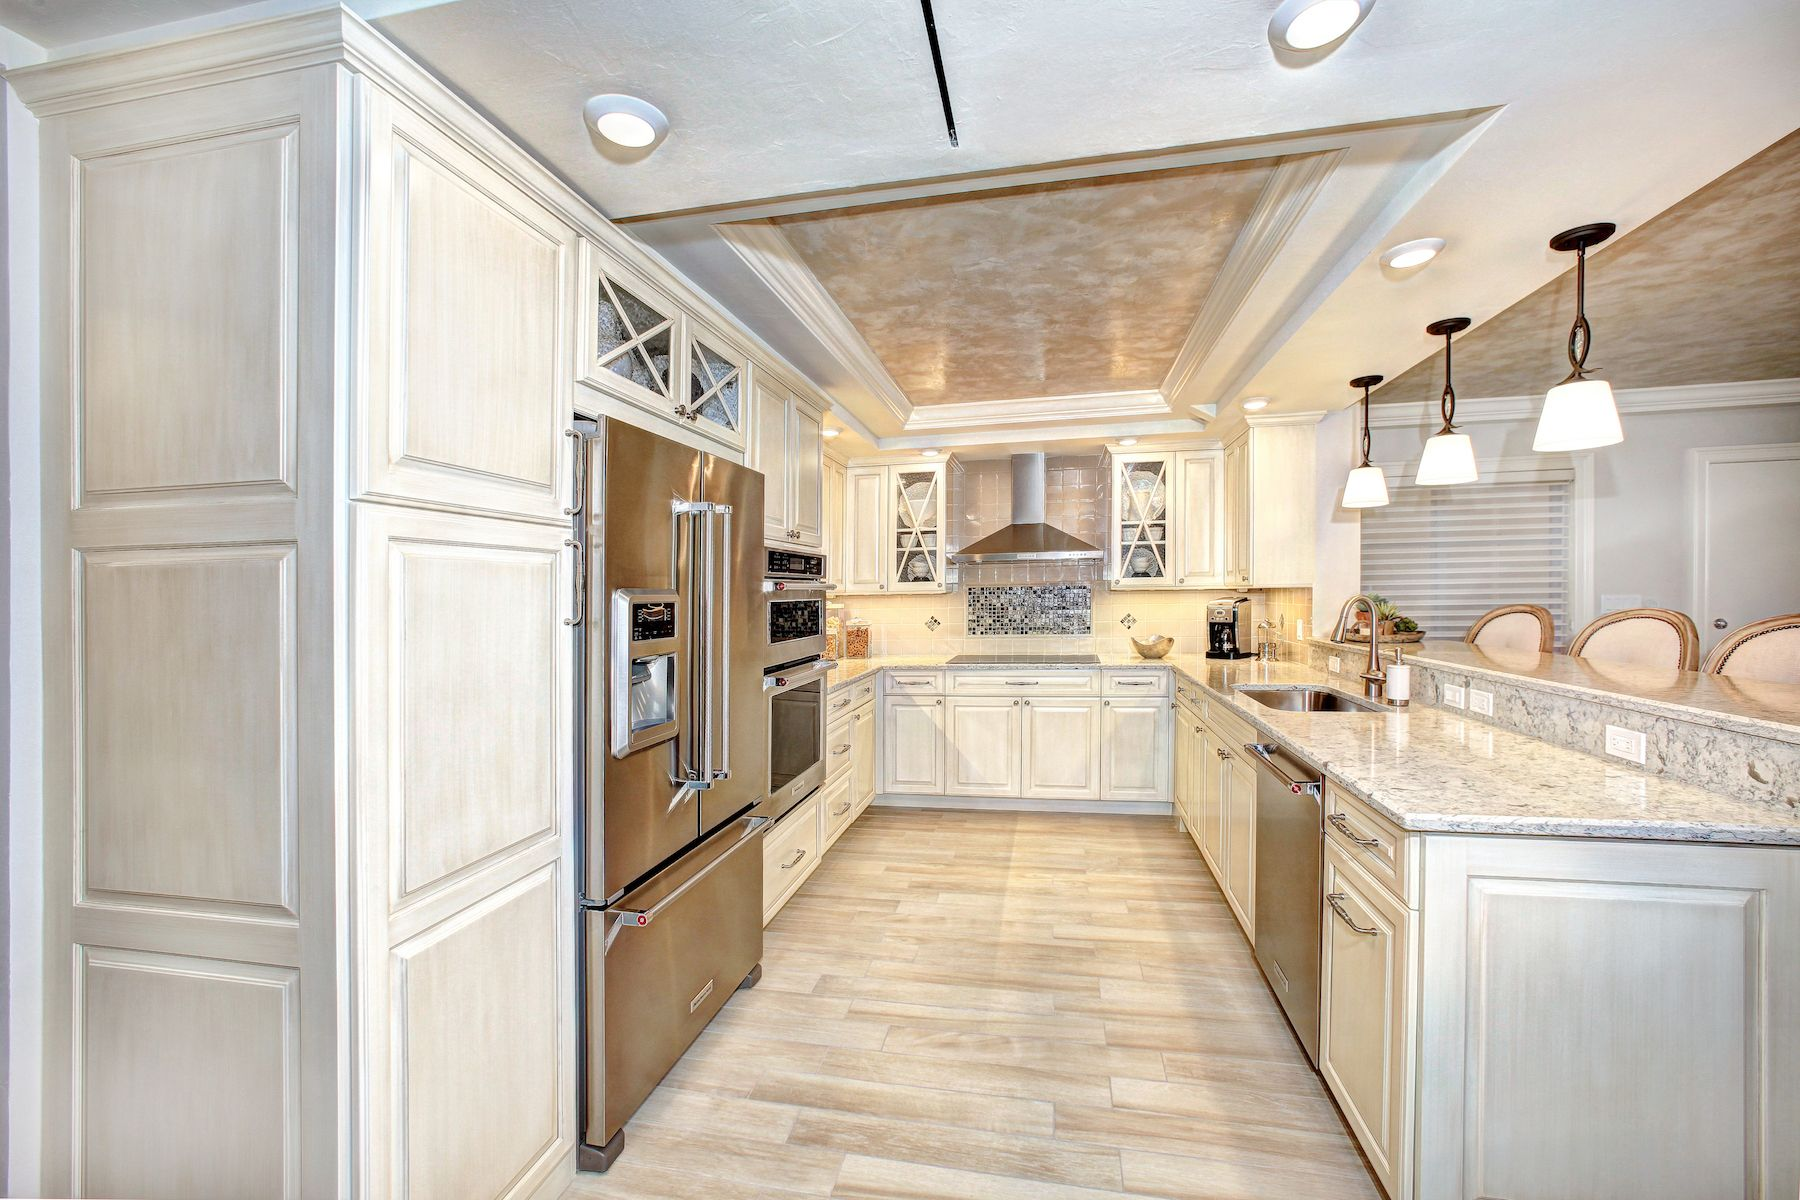 Woodharbor Cabinetry In Coastal White With Latte Brushed Glaze Naples Fl Kitchen Remodel Alley De Luxury Kitchen Design Kitchen Remodel Top Kitchen Cabinets